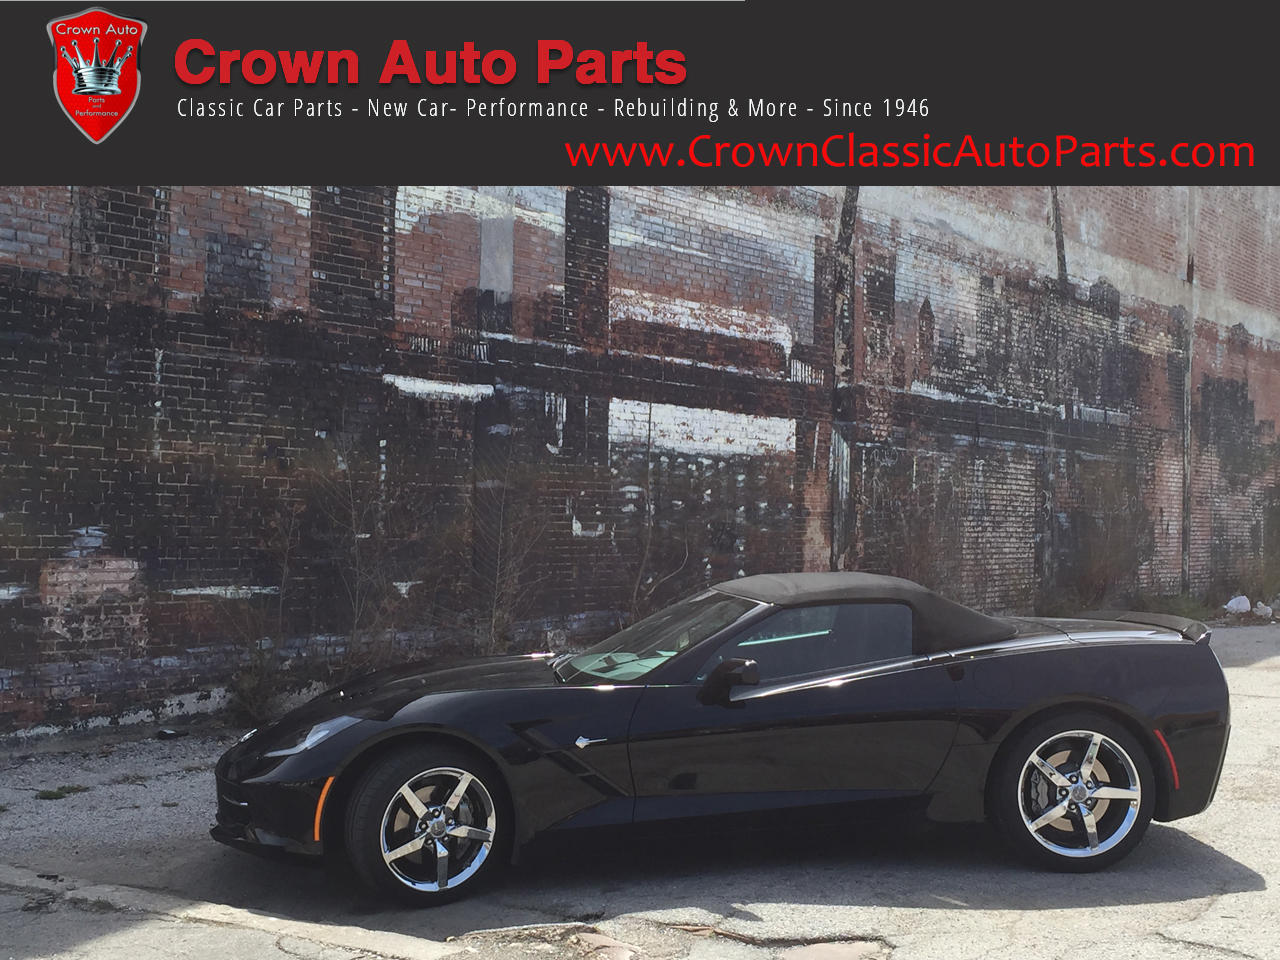 Crown Auto Parts & Rebuilding image 16